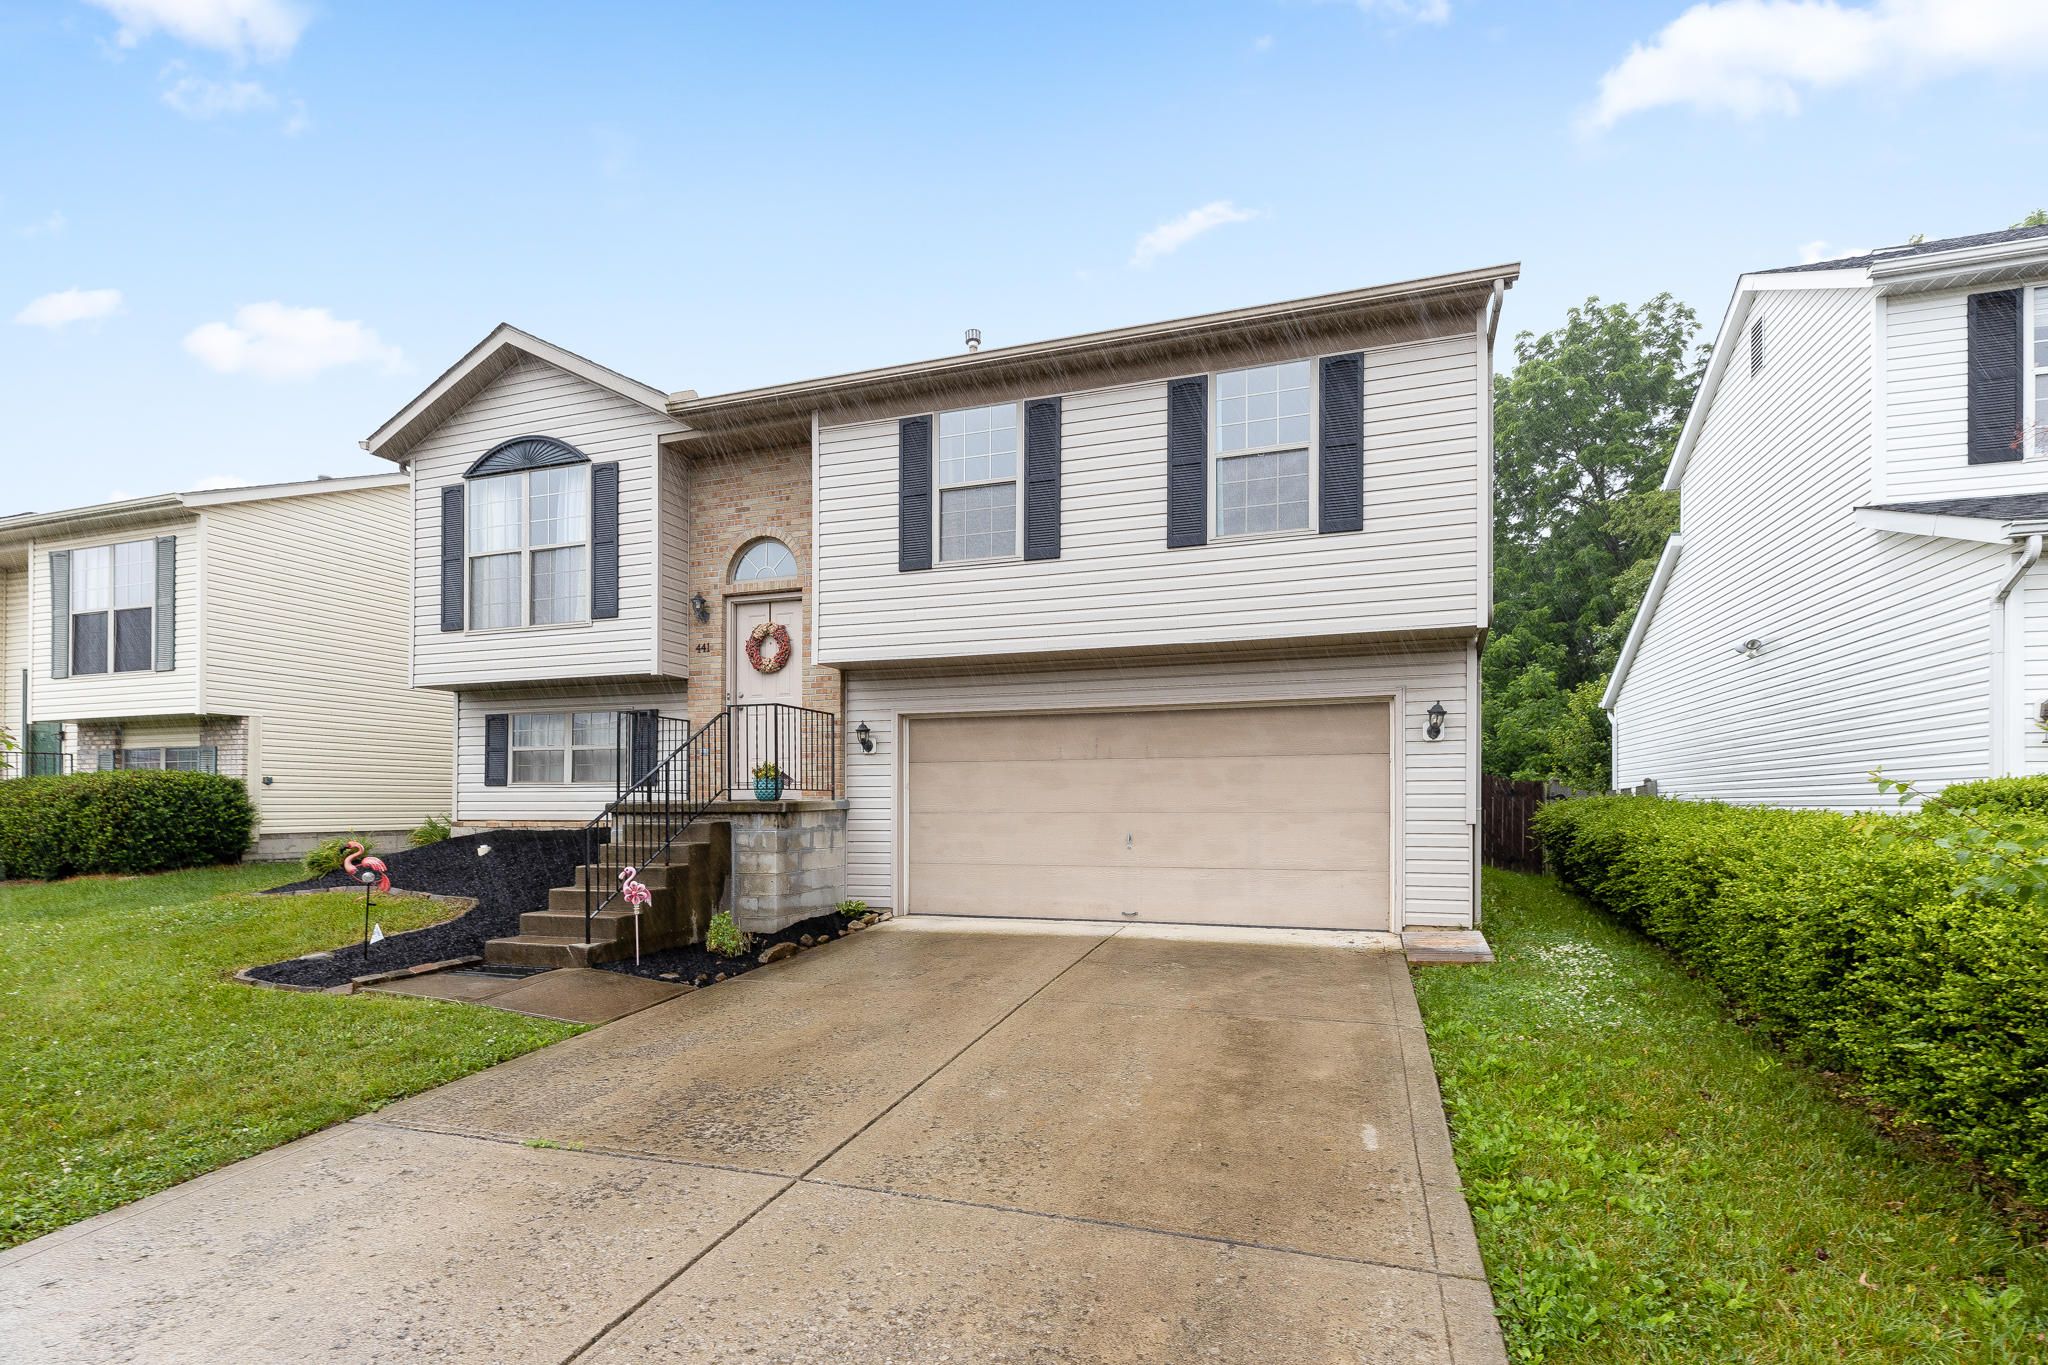 Photo 1 for 441 Hances Dr Blacklick, OH 43004